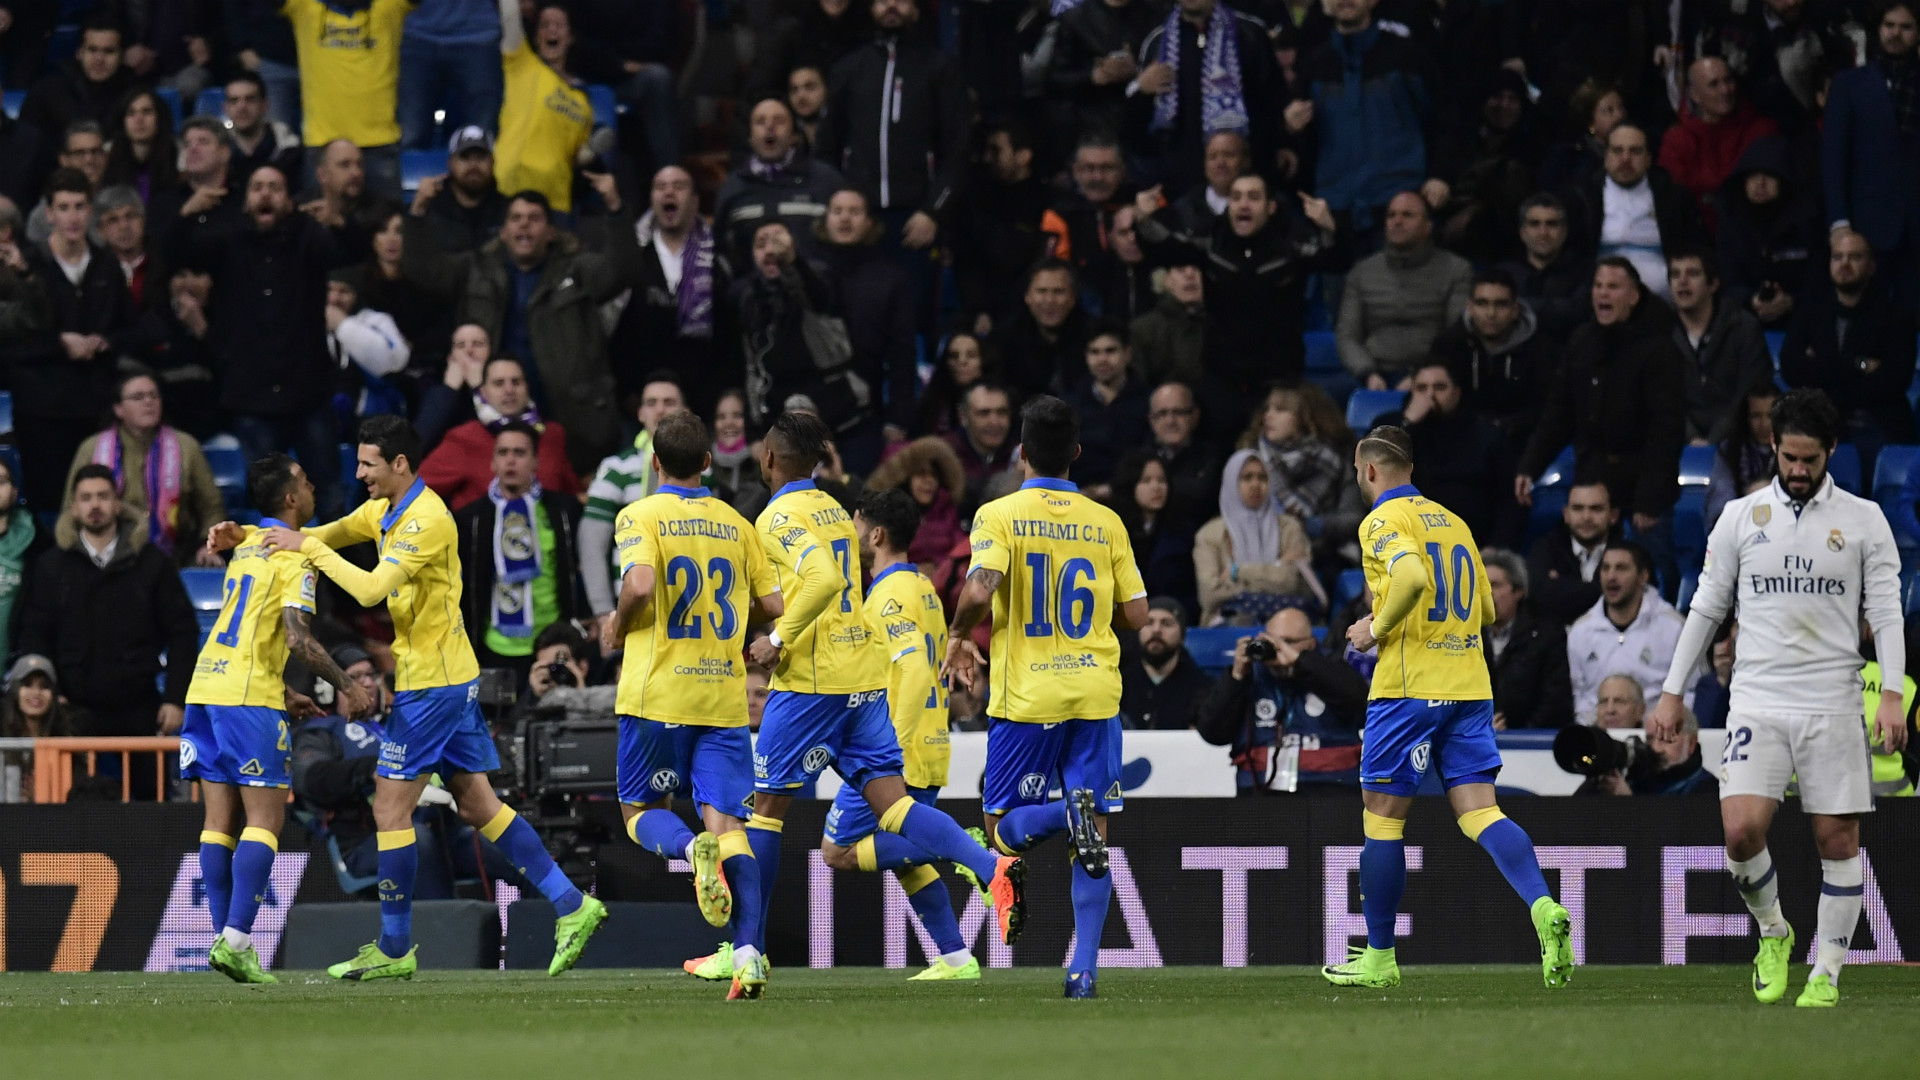 What We Learnt From Real Madrid's 33 Draw With Las Palmas